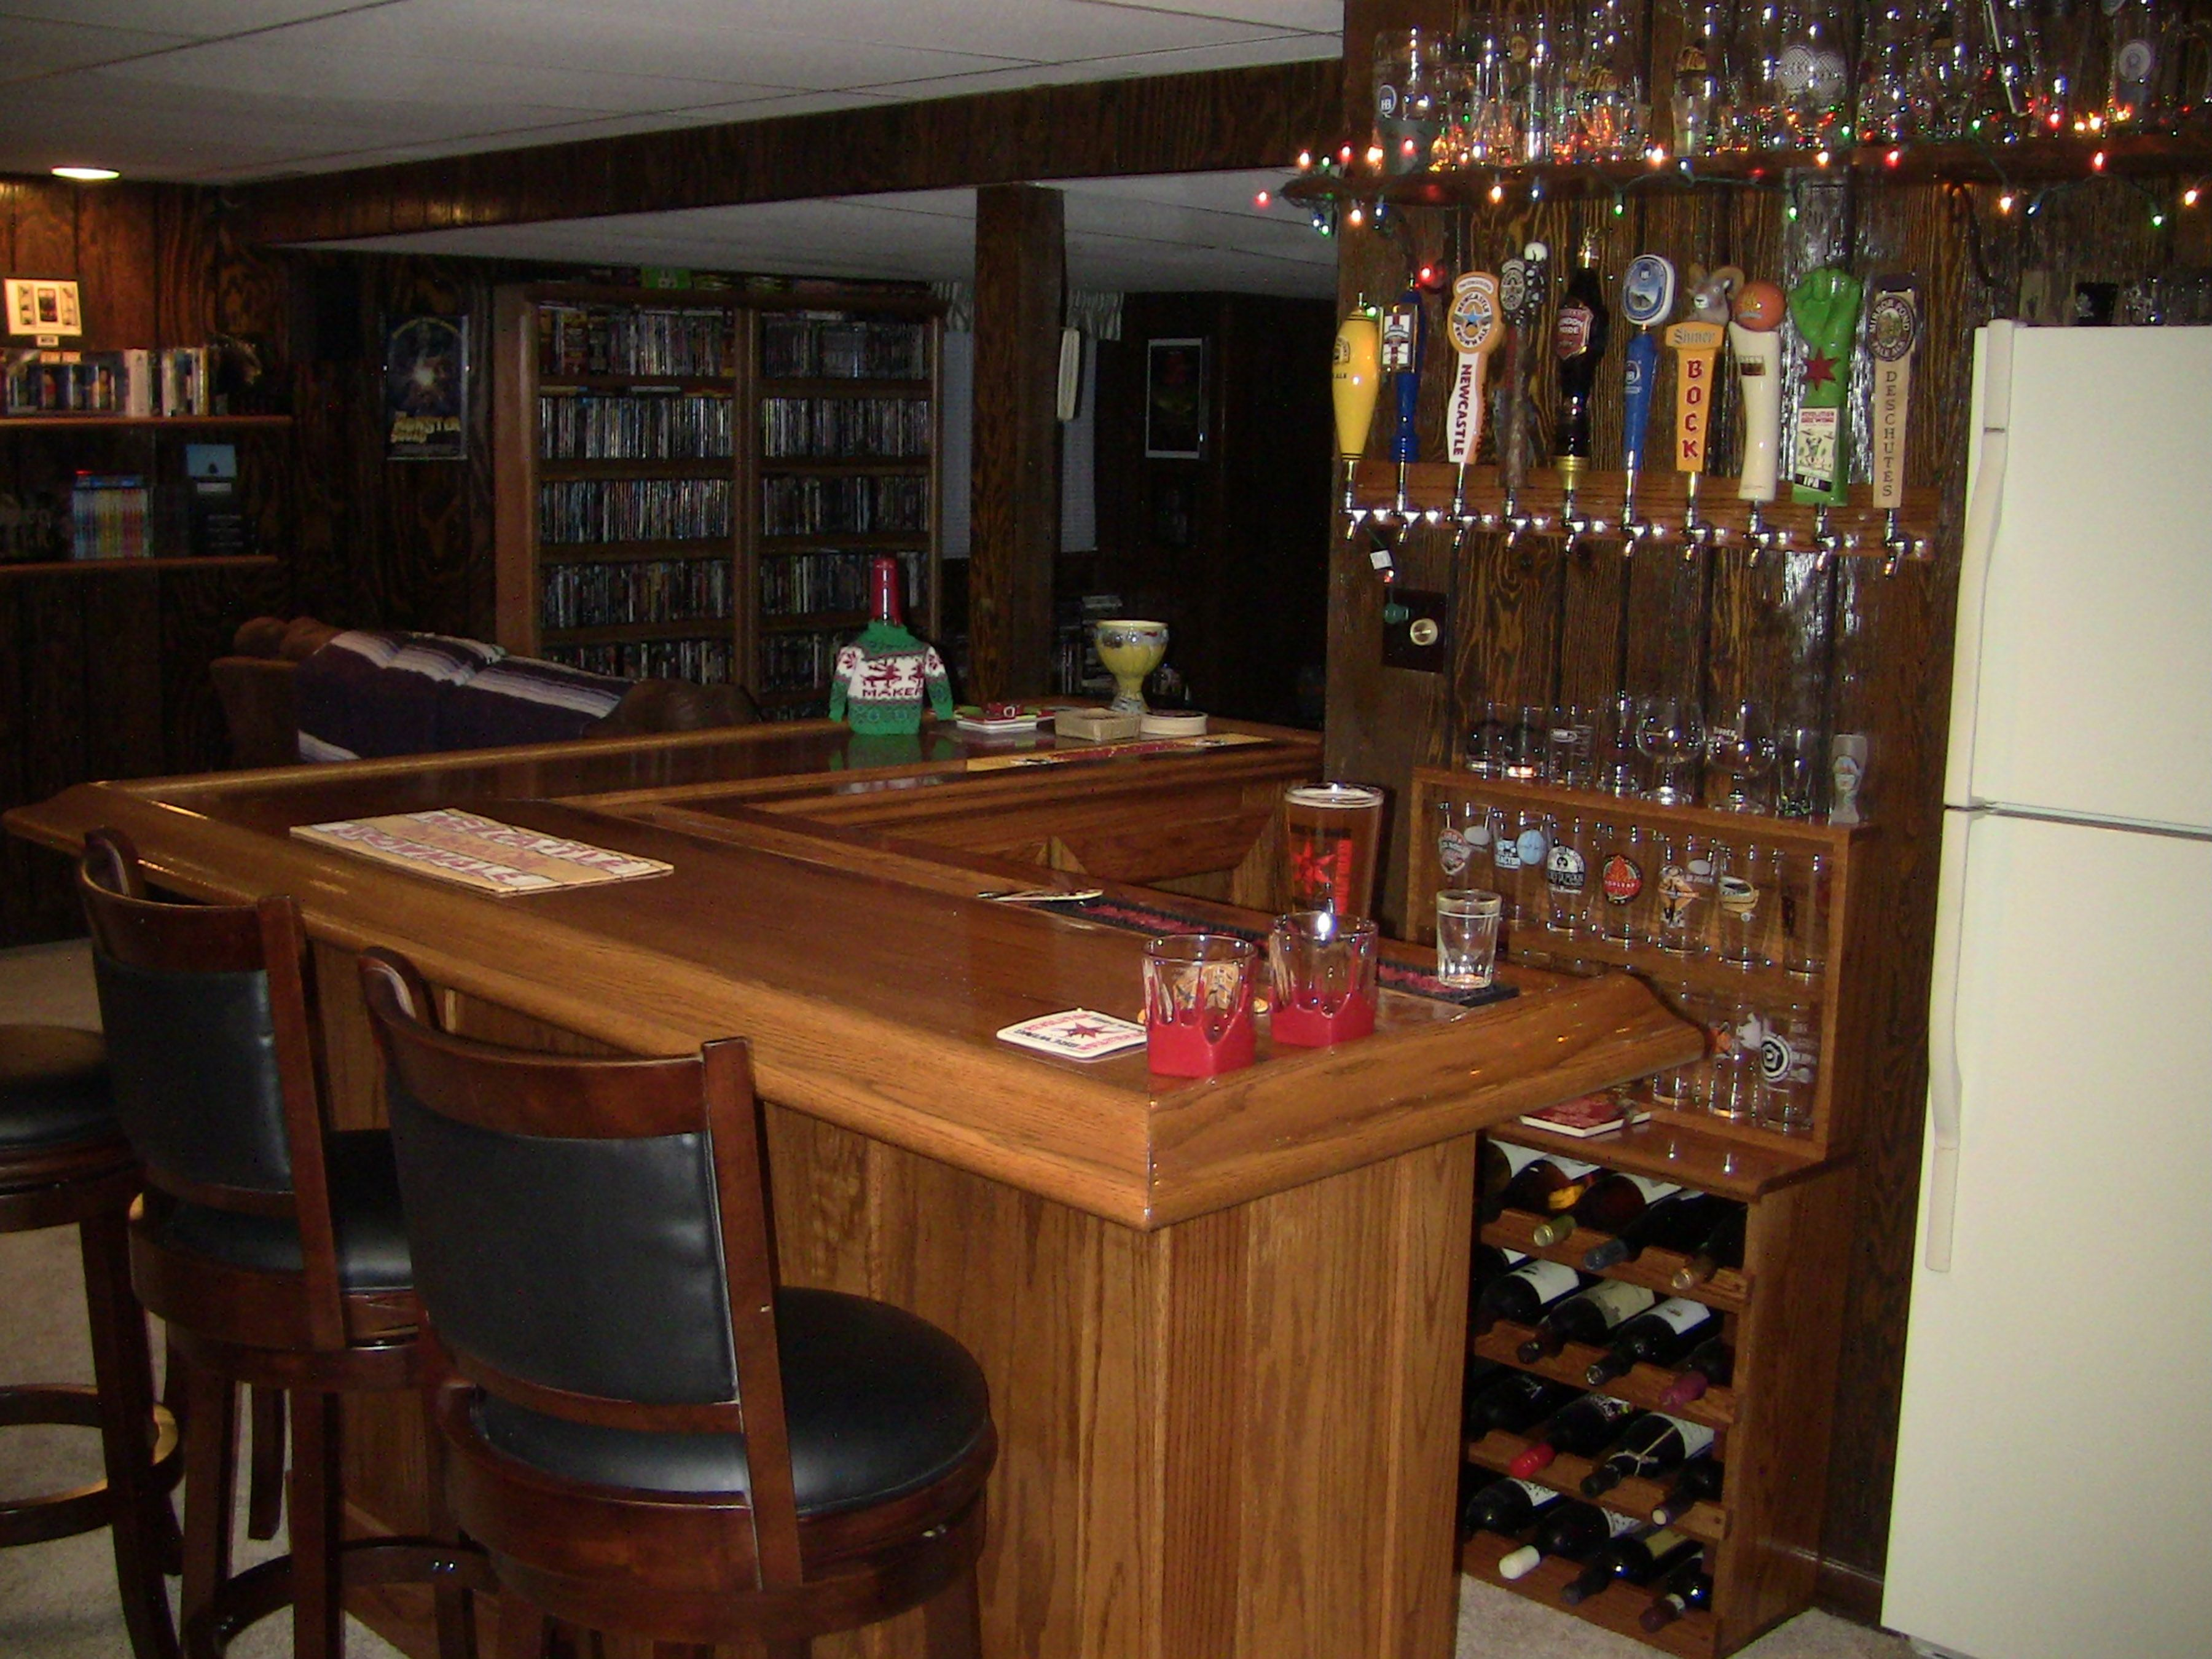 Final Oak Home Bar With Stools Back And Christmas Lights